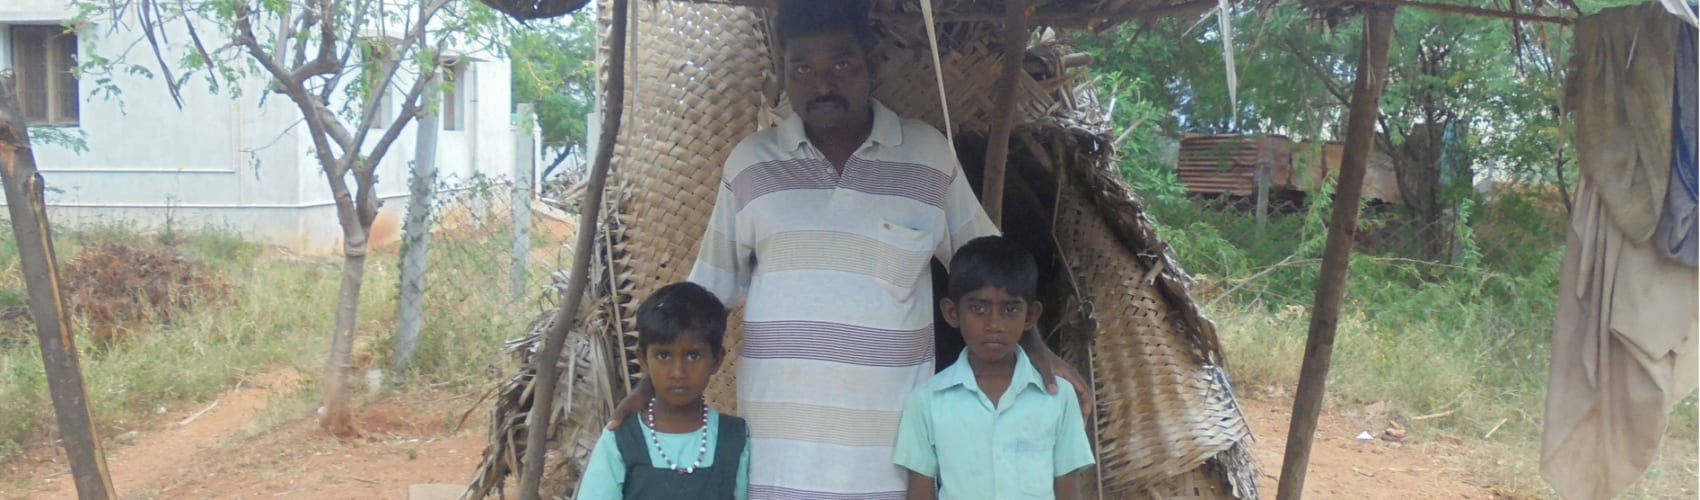 A family in a rural village in South India outside their hut prior to having a house built for them by Reaching the Unreached